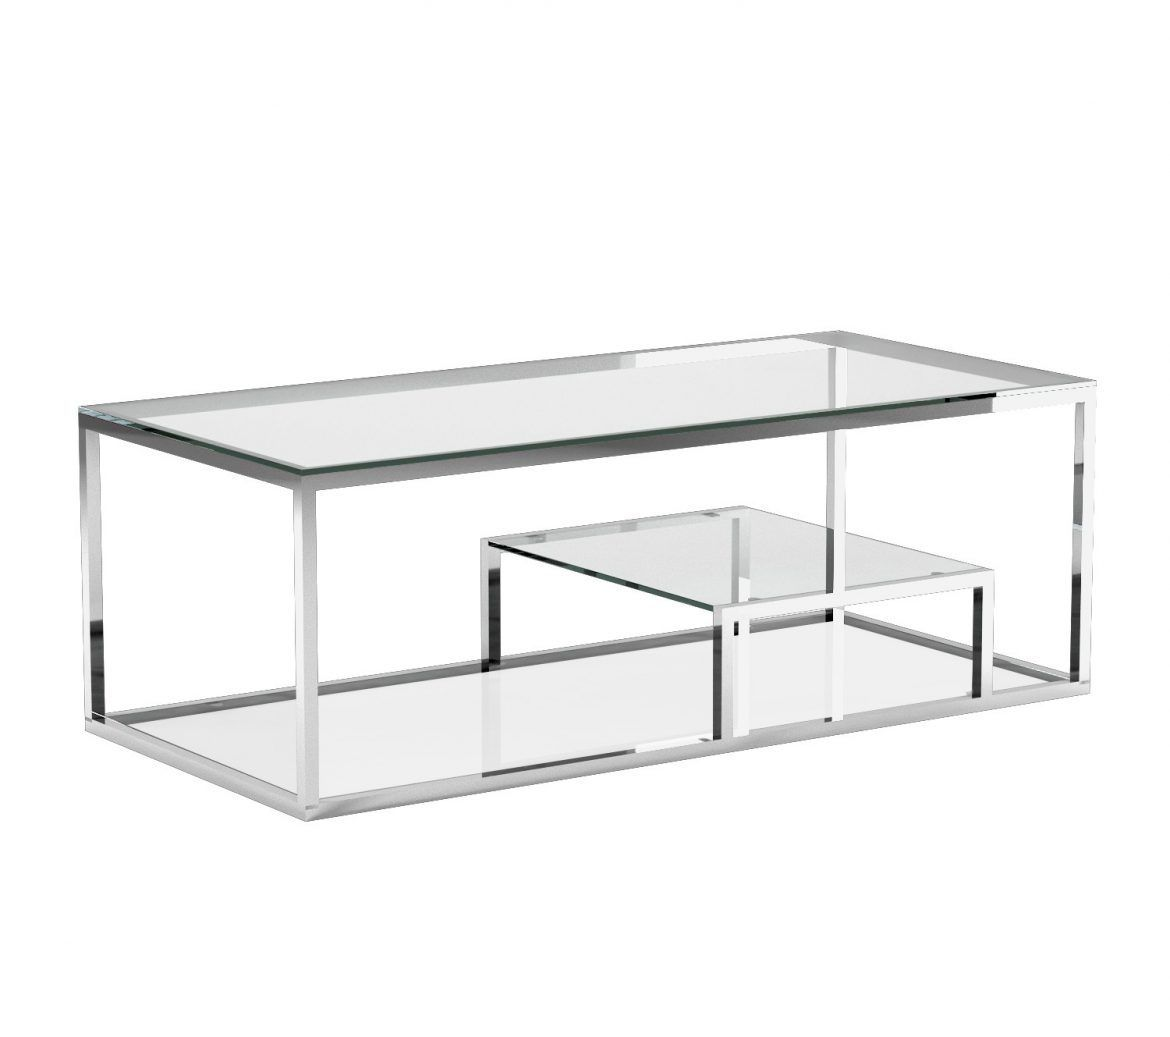 Barolo Coffee Table Coffee Table Glass Coffee Table Coffee Table With Storage [ 1037 x 1170 Pixel ]